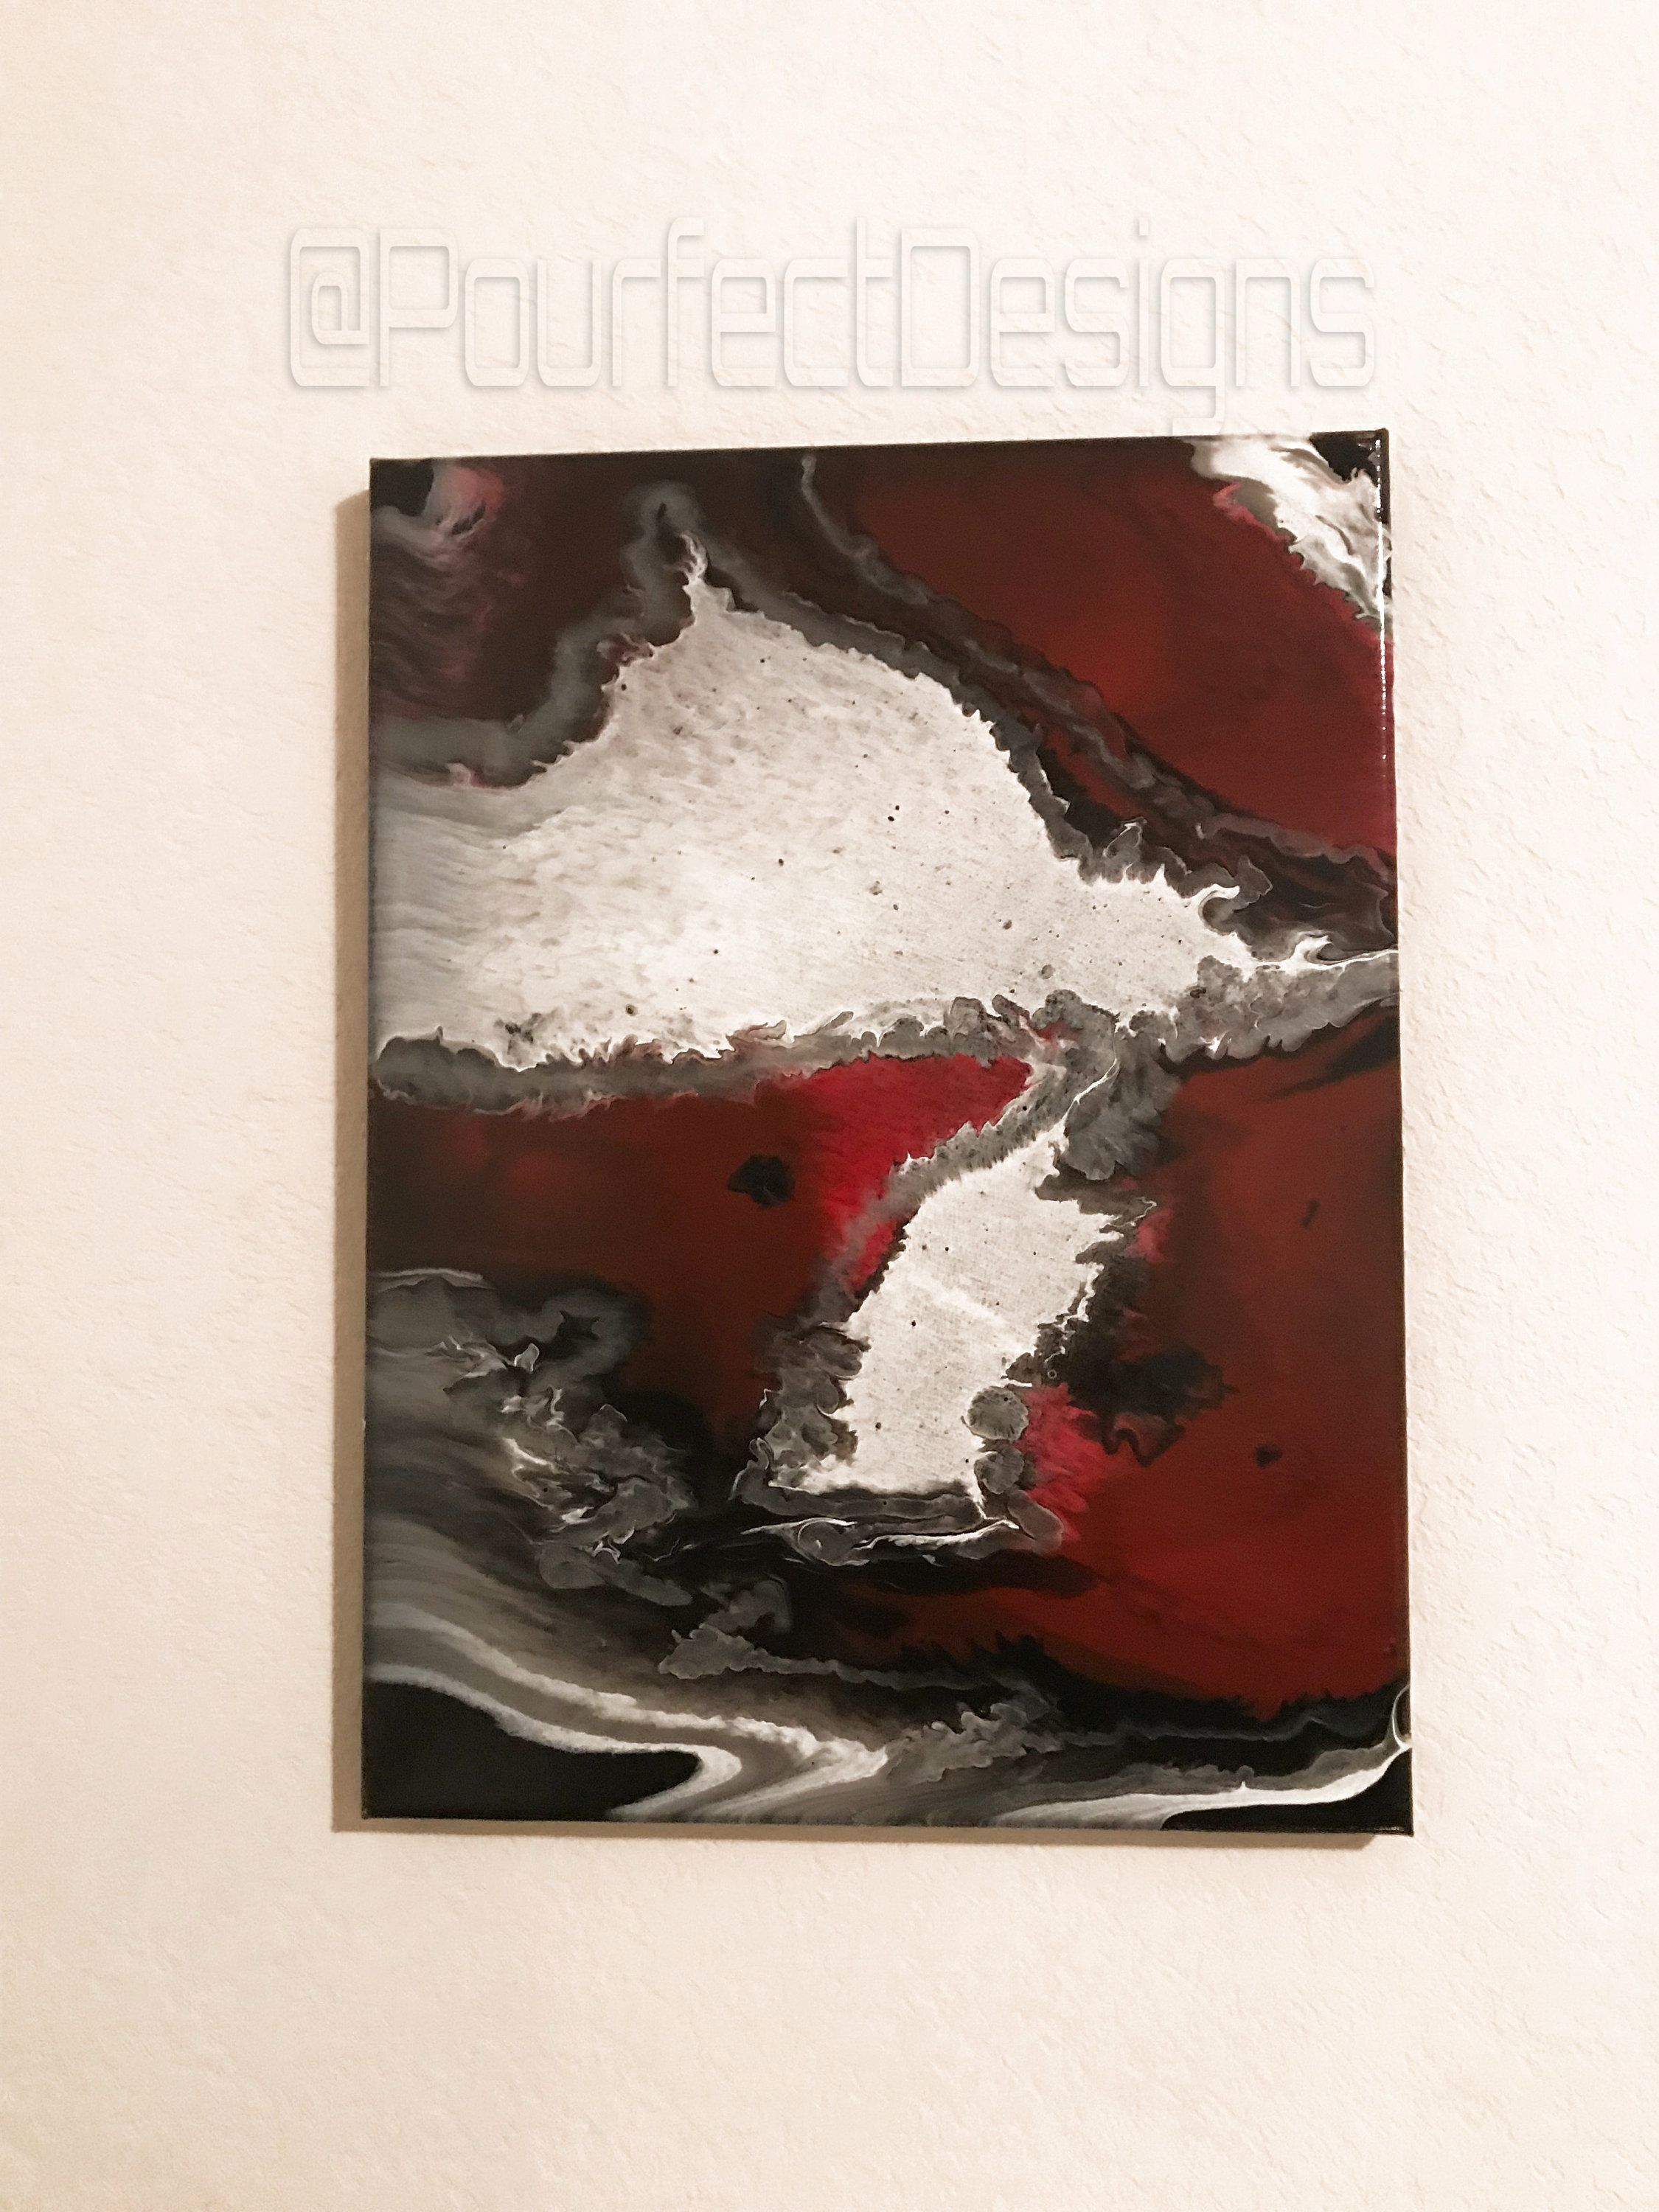 Acrylic Pour Painting On 12x16 Inch Canvas With A Mixture Of Red White Black And Silver Painting Pour Painting Acrylic Pouring